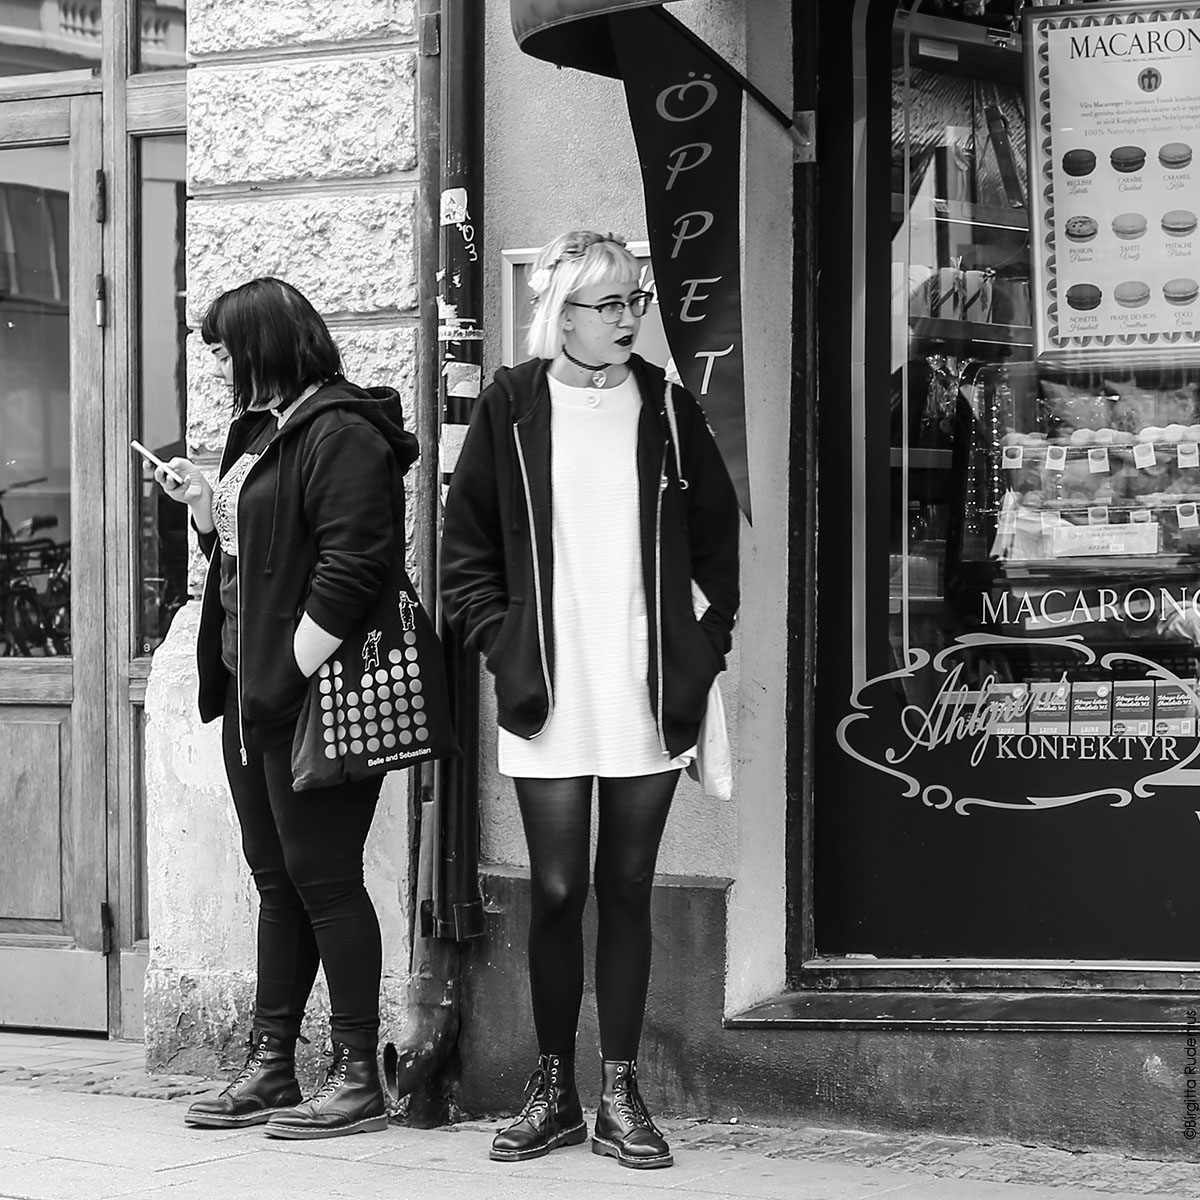 Street Photo - Street Smart Girls